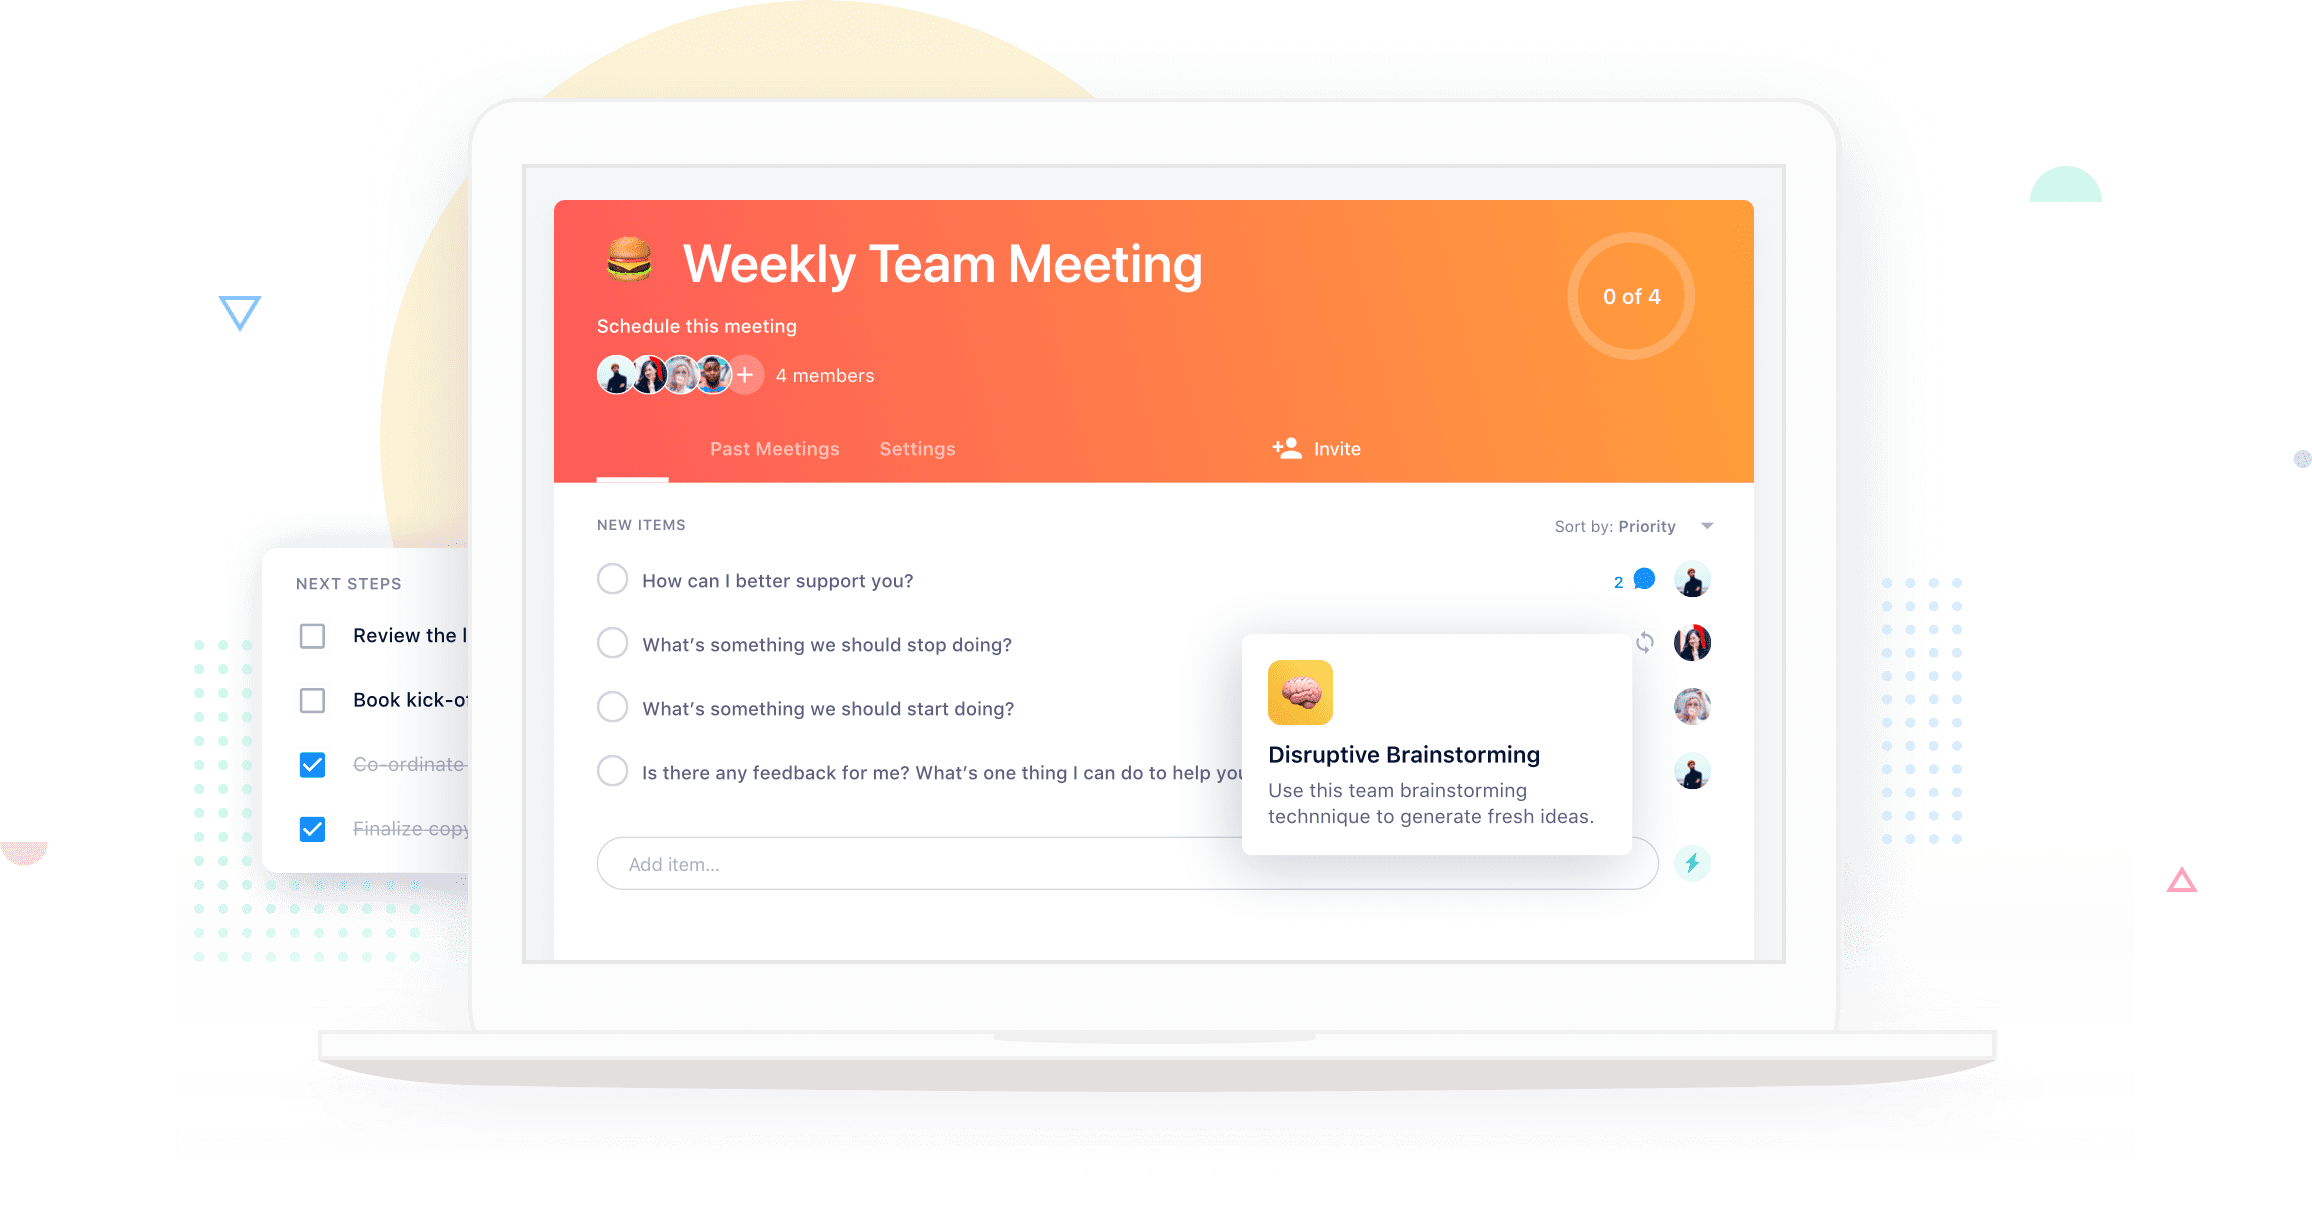 Shared online meeting agenda in Soapbox